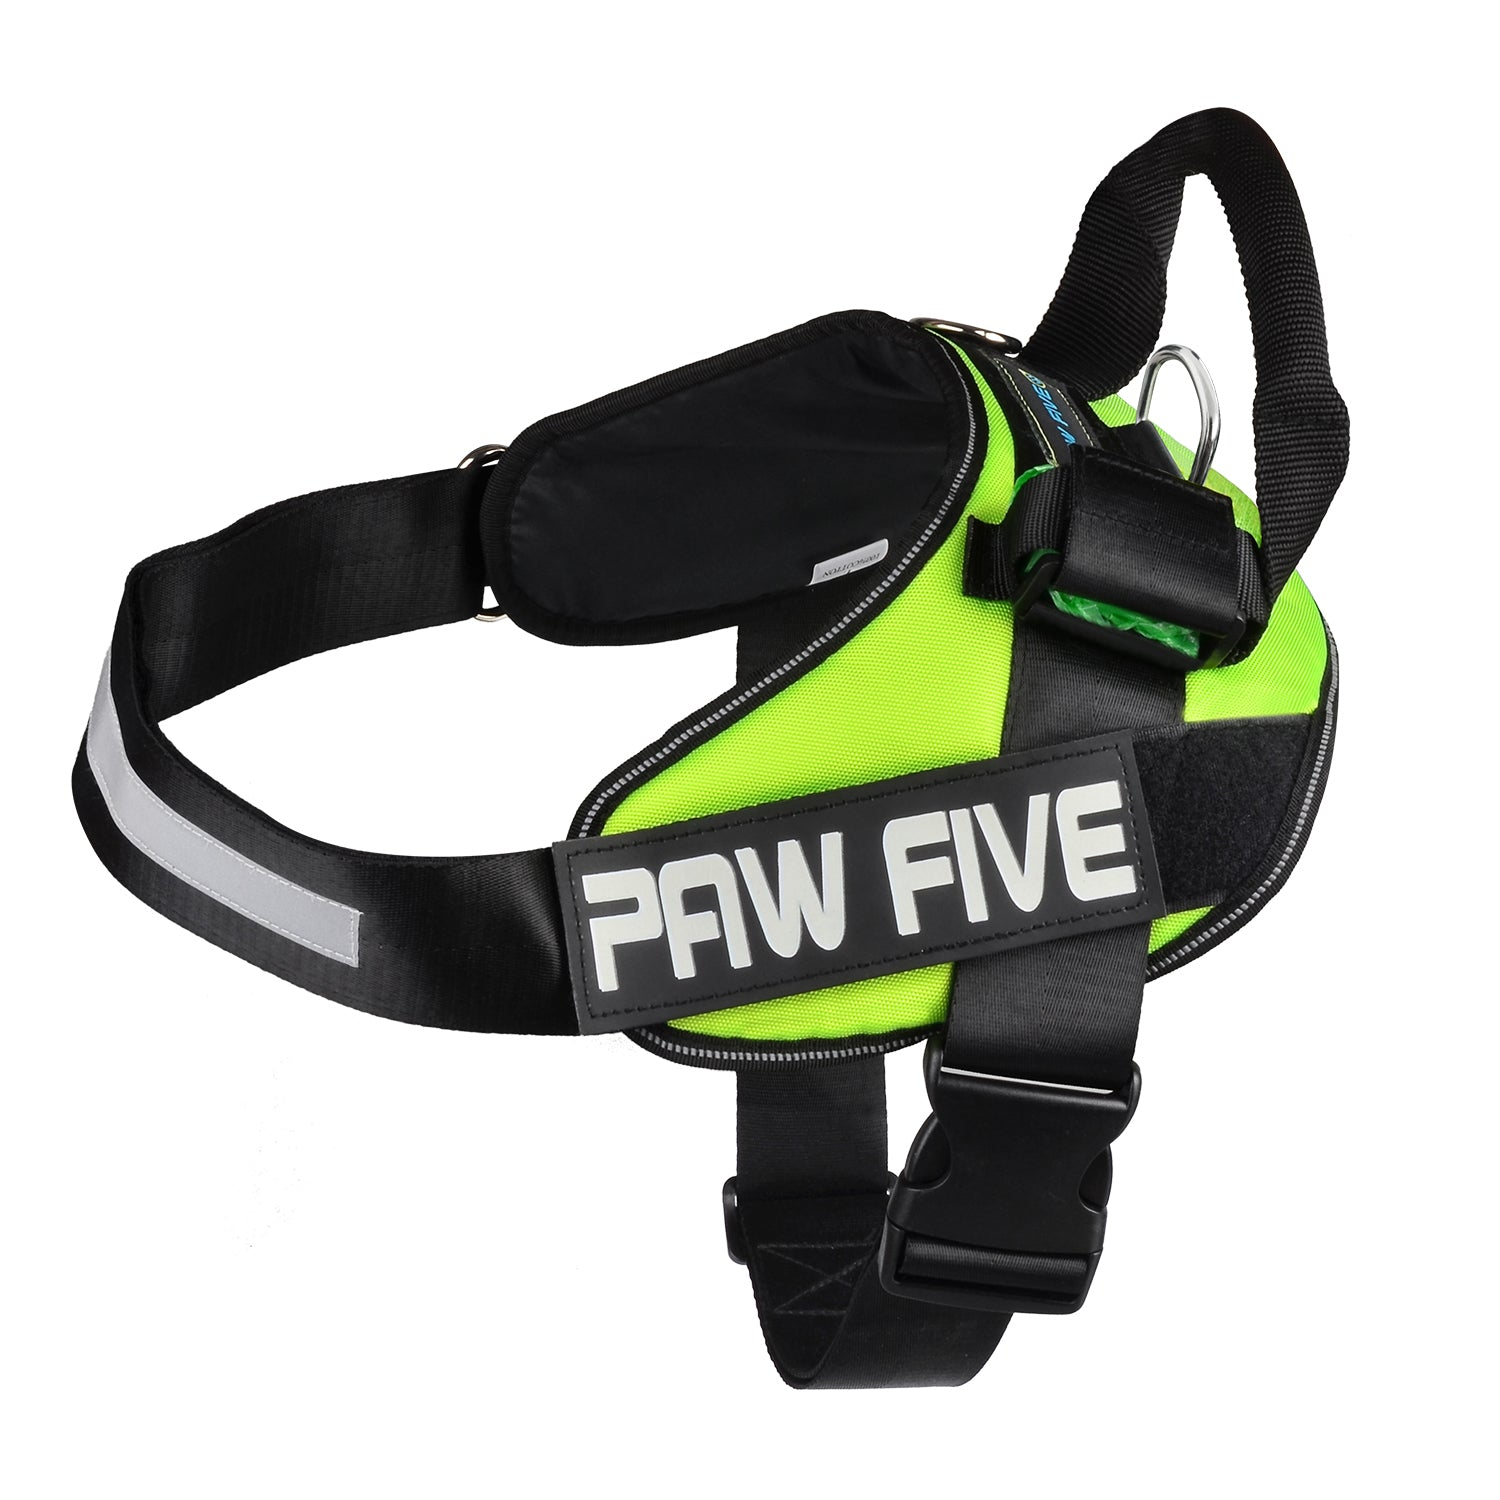 World's Best Dog Harness | Paw Five CORE-1 Harness